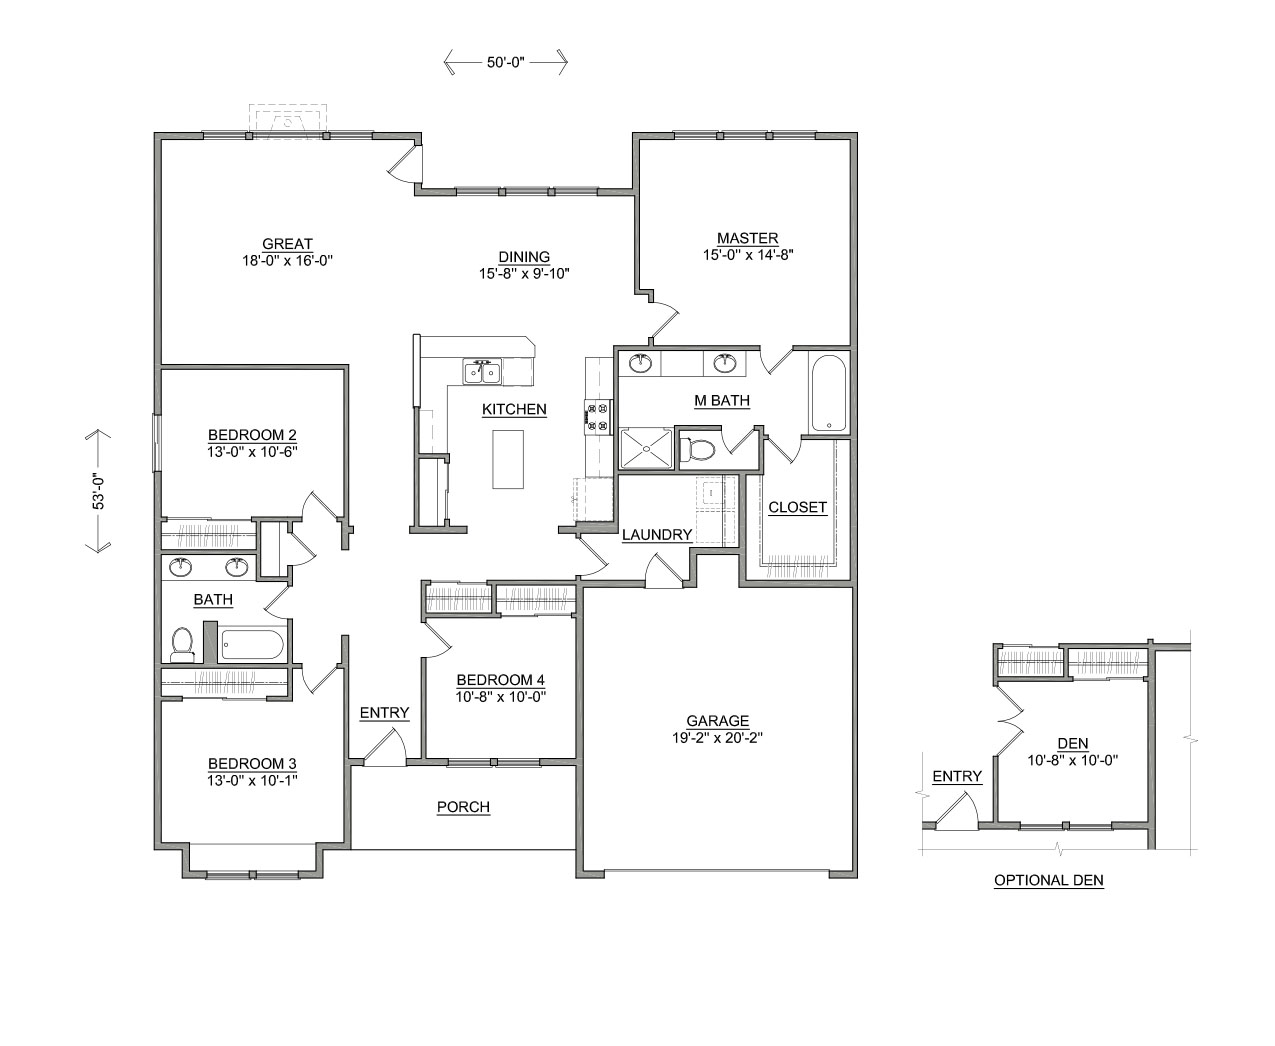 hayden homes umpqua floor plan